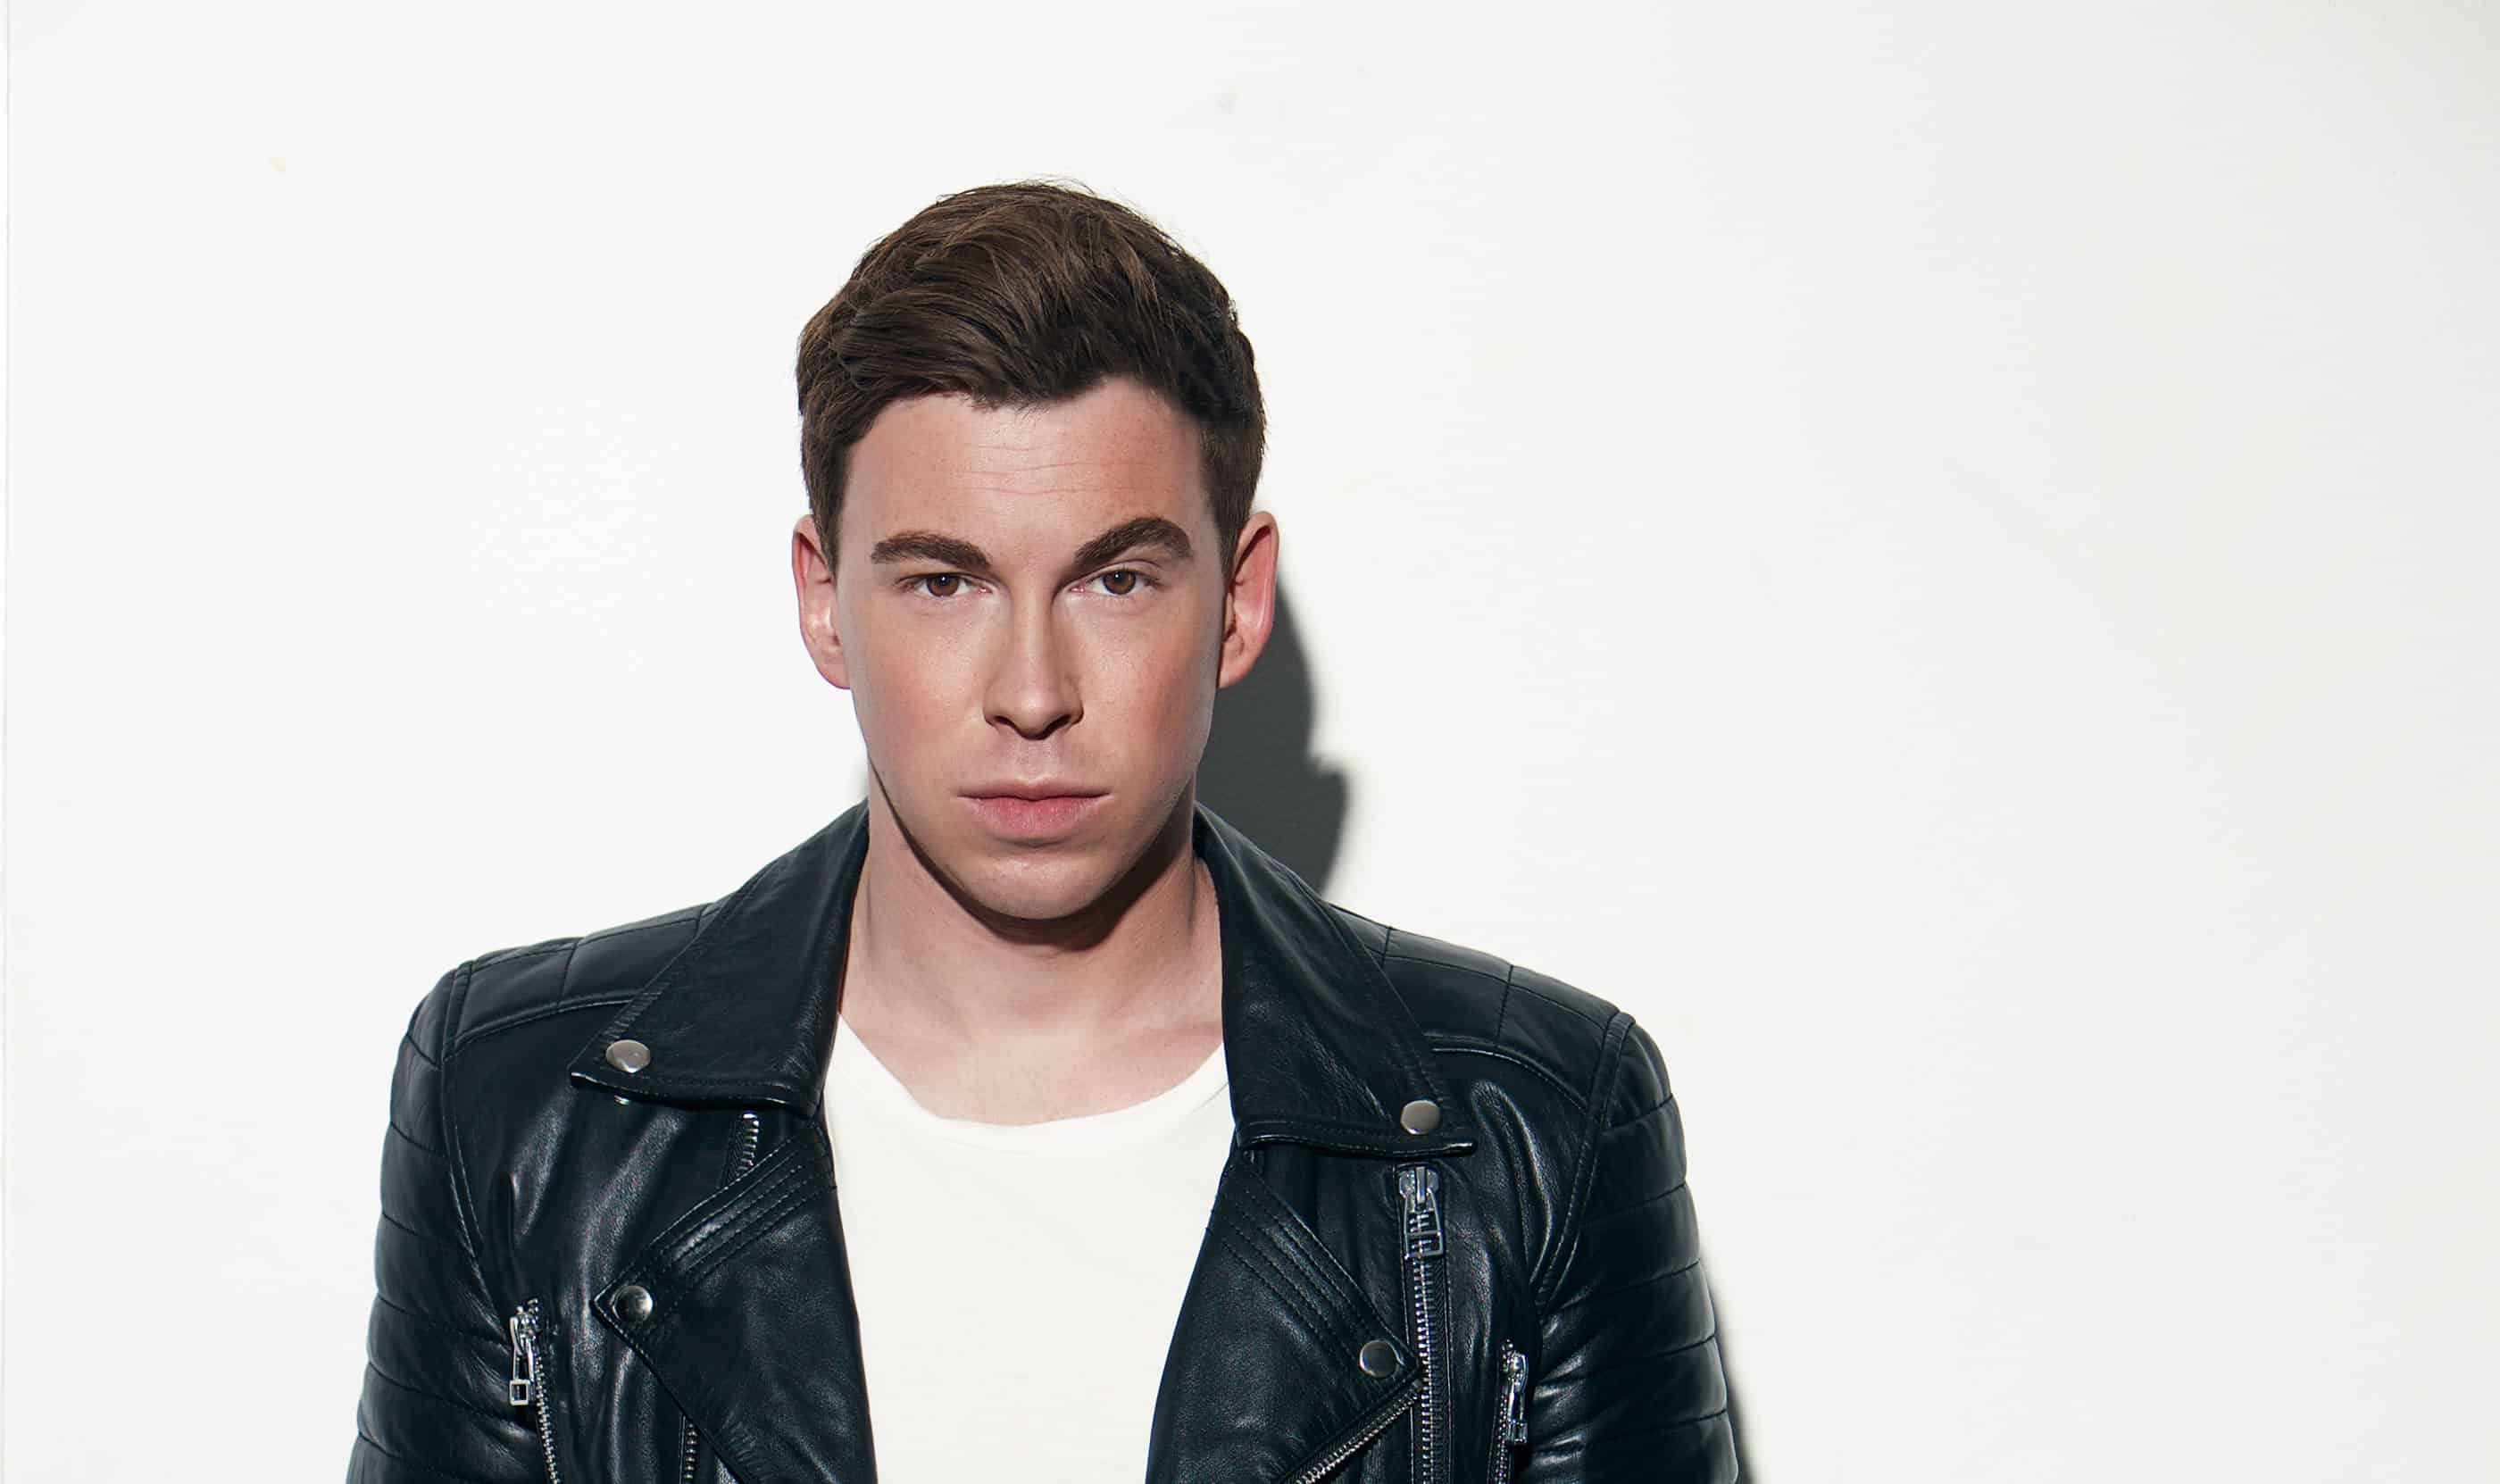 Hardwell reveals that he will not play at Tomorrowland this year